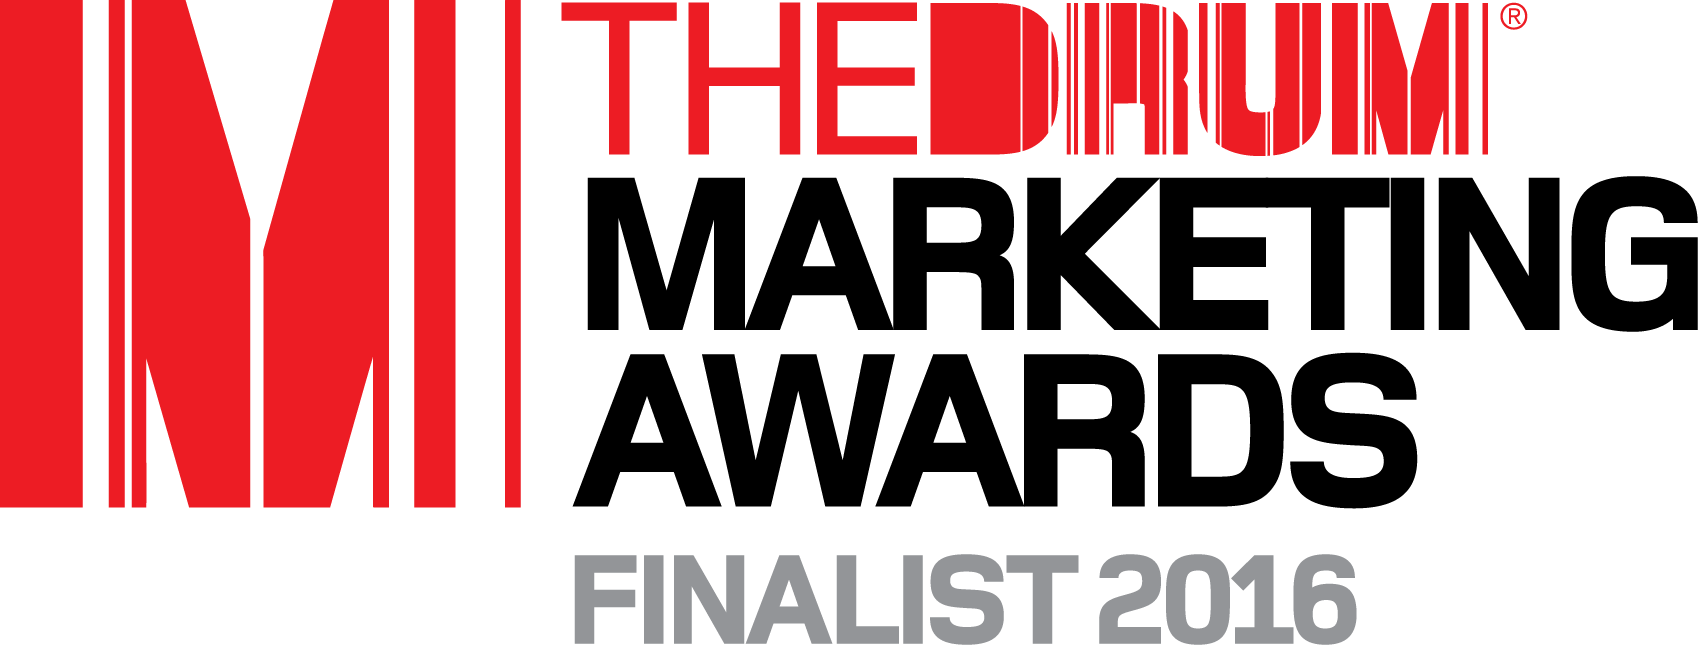 Drum_Marketing Awards_FINALIST